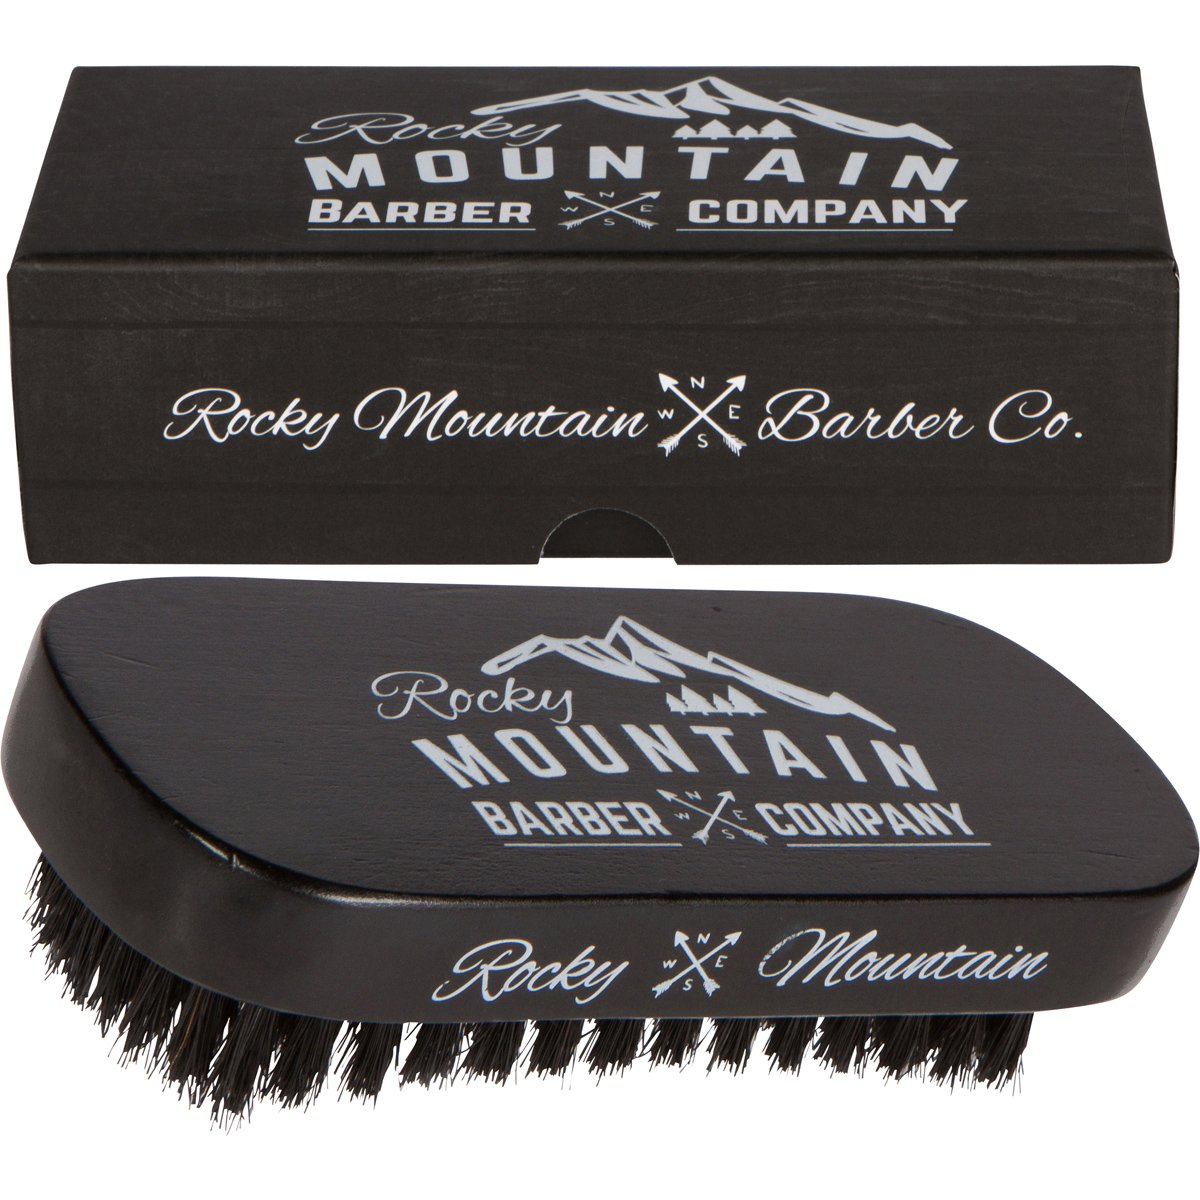 Men's Hair Brush- 100% Pure Black Boar Hair Natural Bristle for Beard, Moustache - Firm Military Style with Handmade Wood Handle – No Snags, No Scratch, Gentle Bristle Comb that Can be Used with Beard Oil & Beard Wax– BONUS Gift Box Rocky Mountain Barb